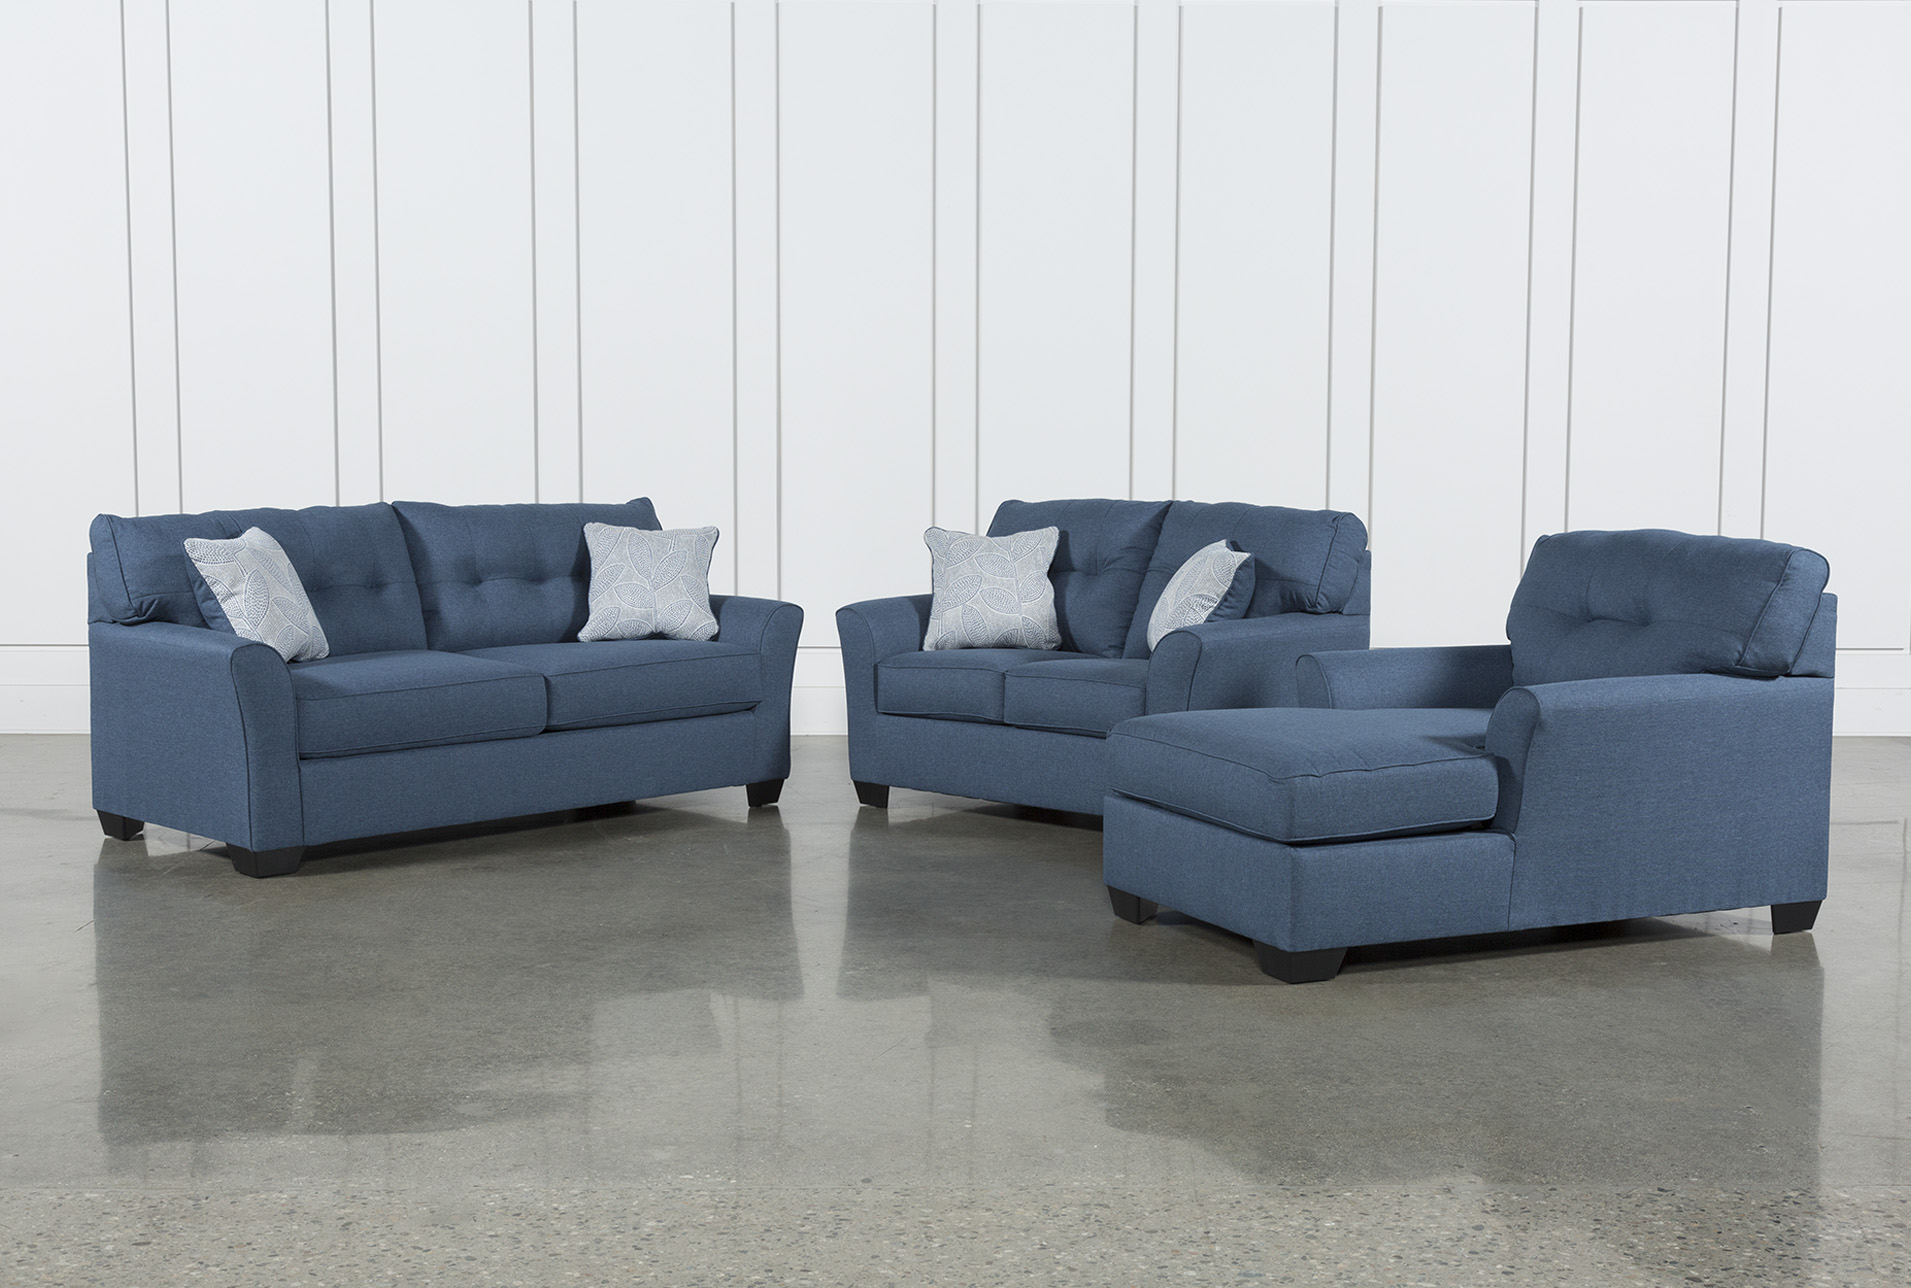 3 piece living room table set ceiling lighting uk sets spaces jacoby denim